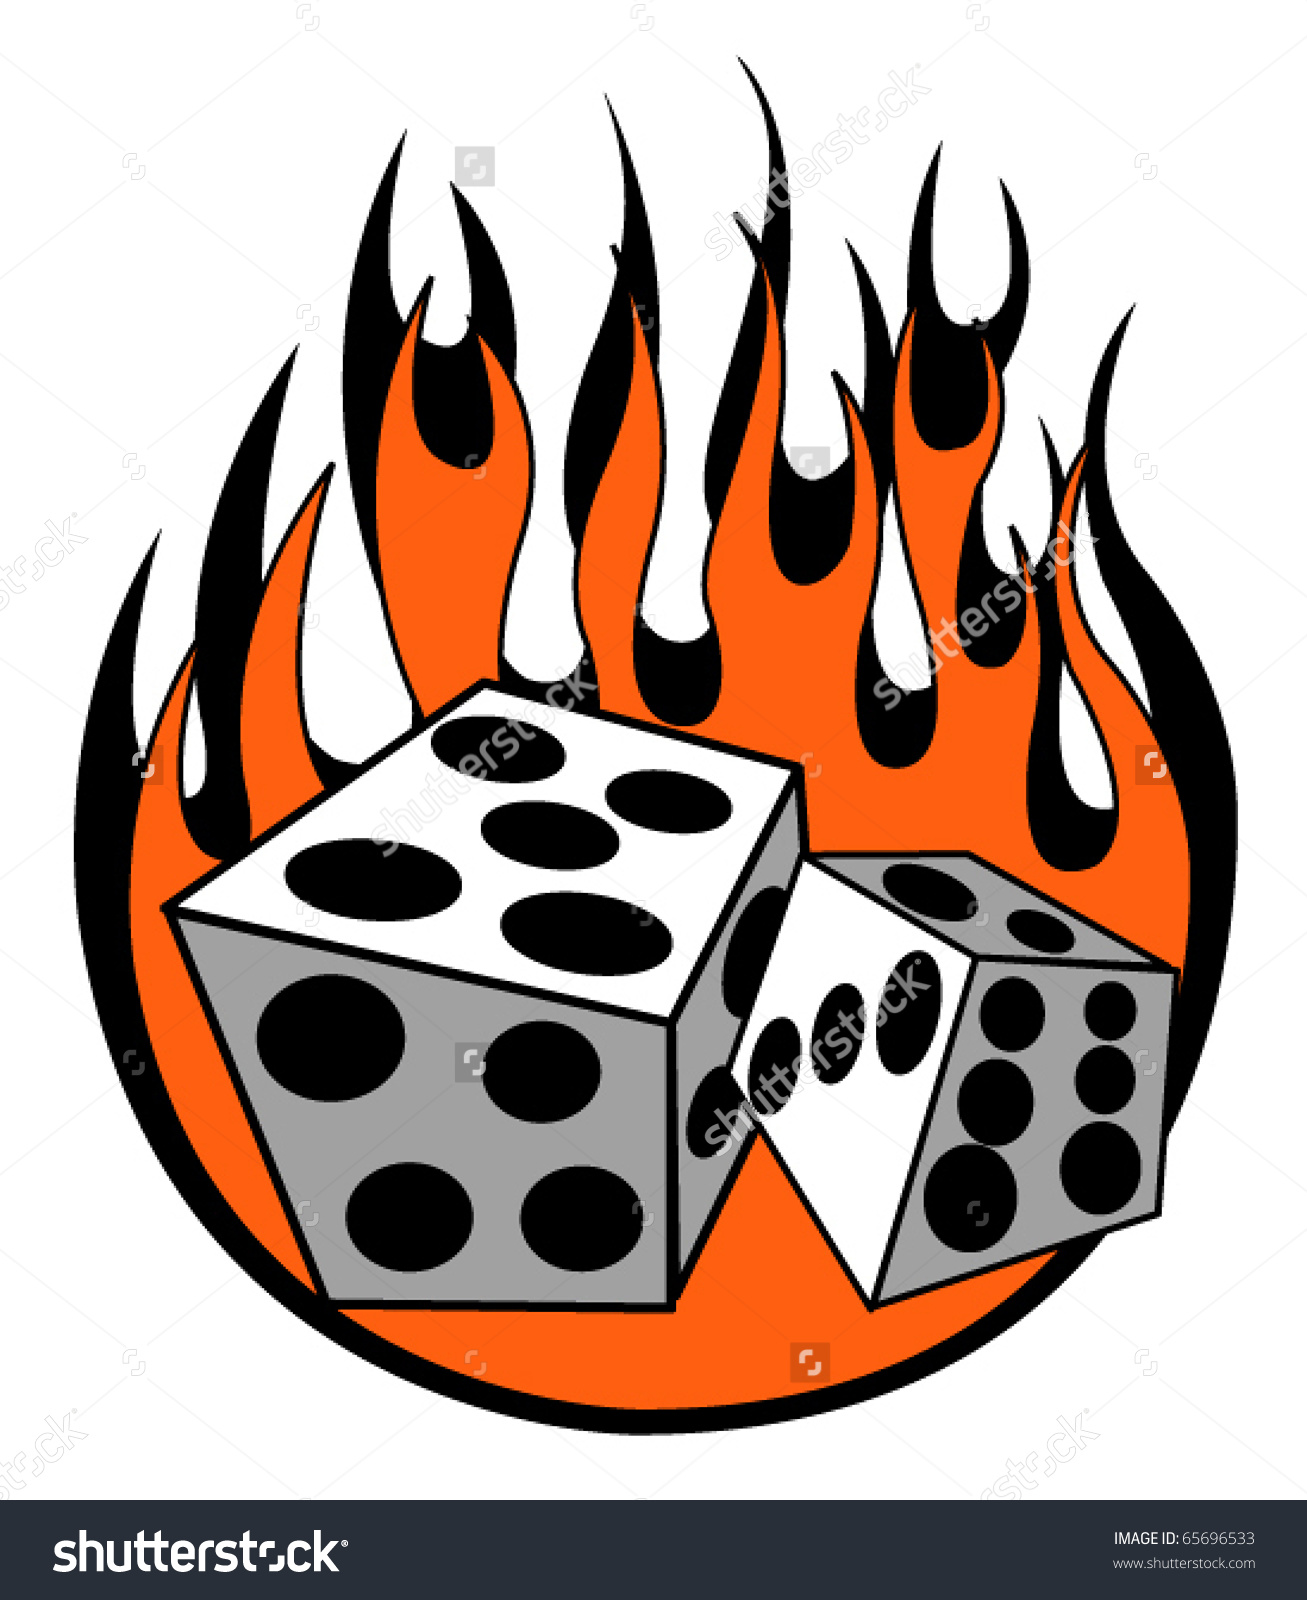 Lucky seven clipart clip art transparent download Lucky Seven Las Vegas Gambling Dice Being Rolled With Flames ... clip art transparent download